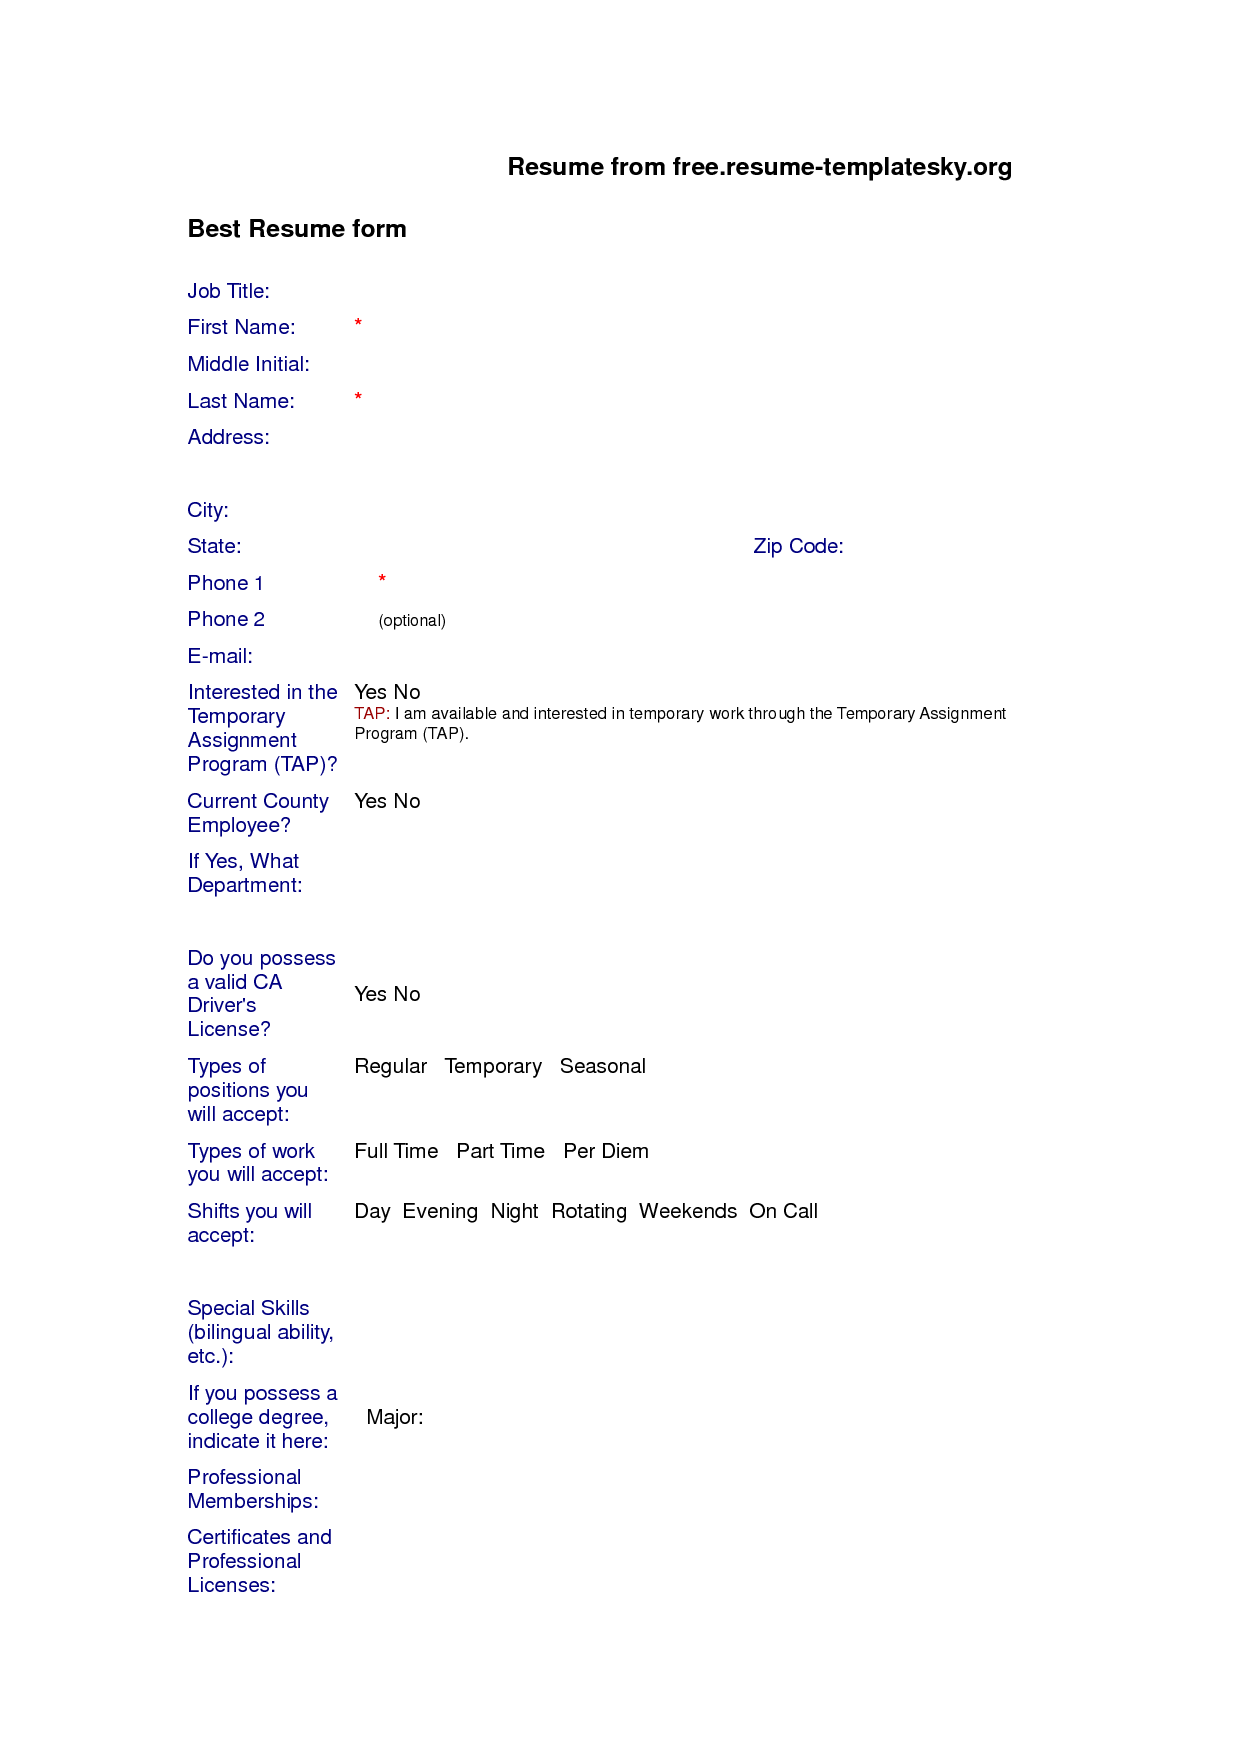 Free Resume Format Downloads Blank Resume Format Free Download  Httpwww.resumecareerbl .